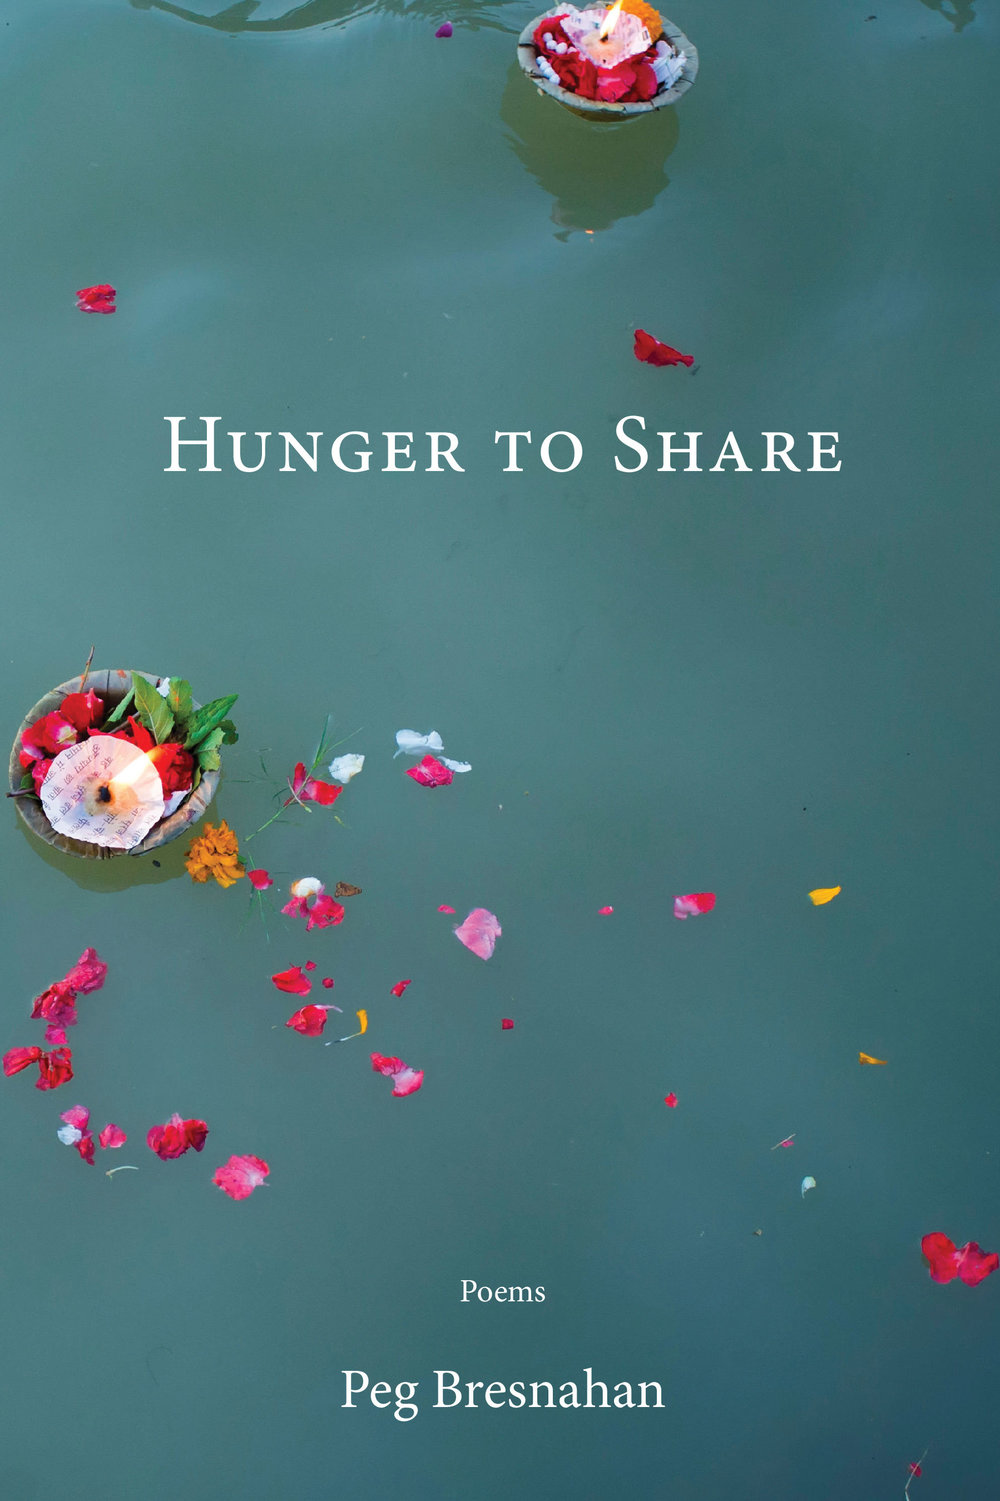 Hunger to Share by Peg Breanahan.jpg